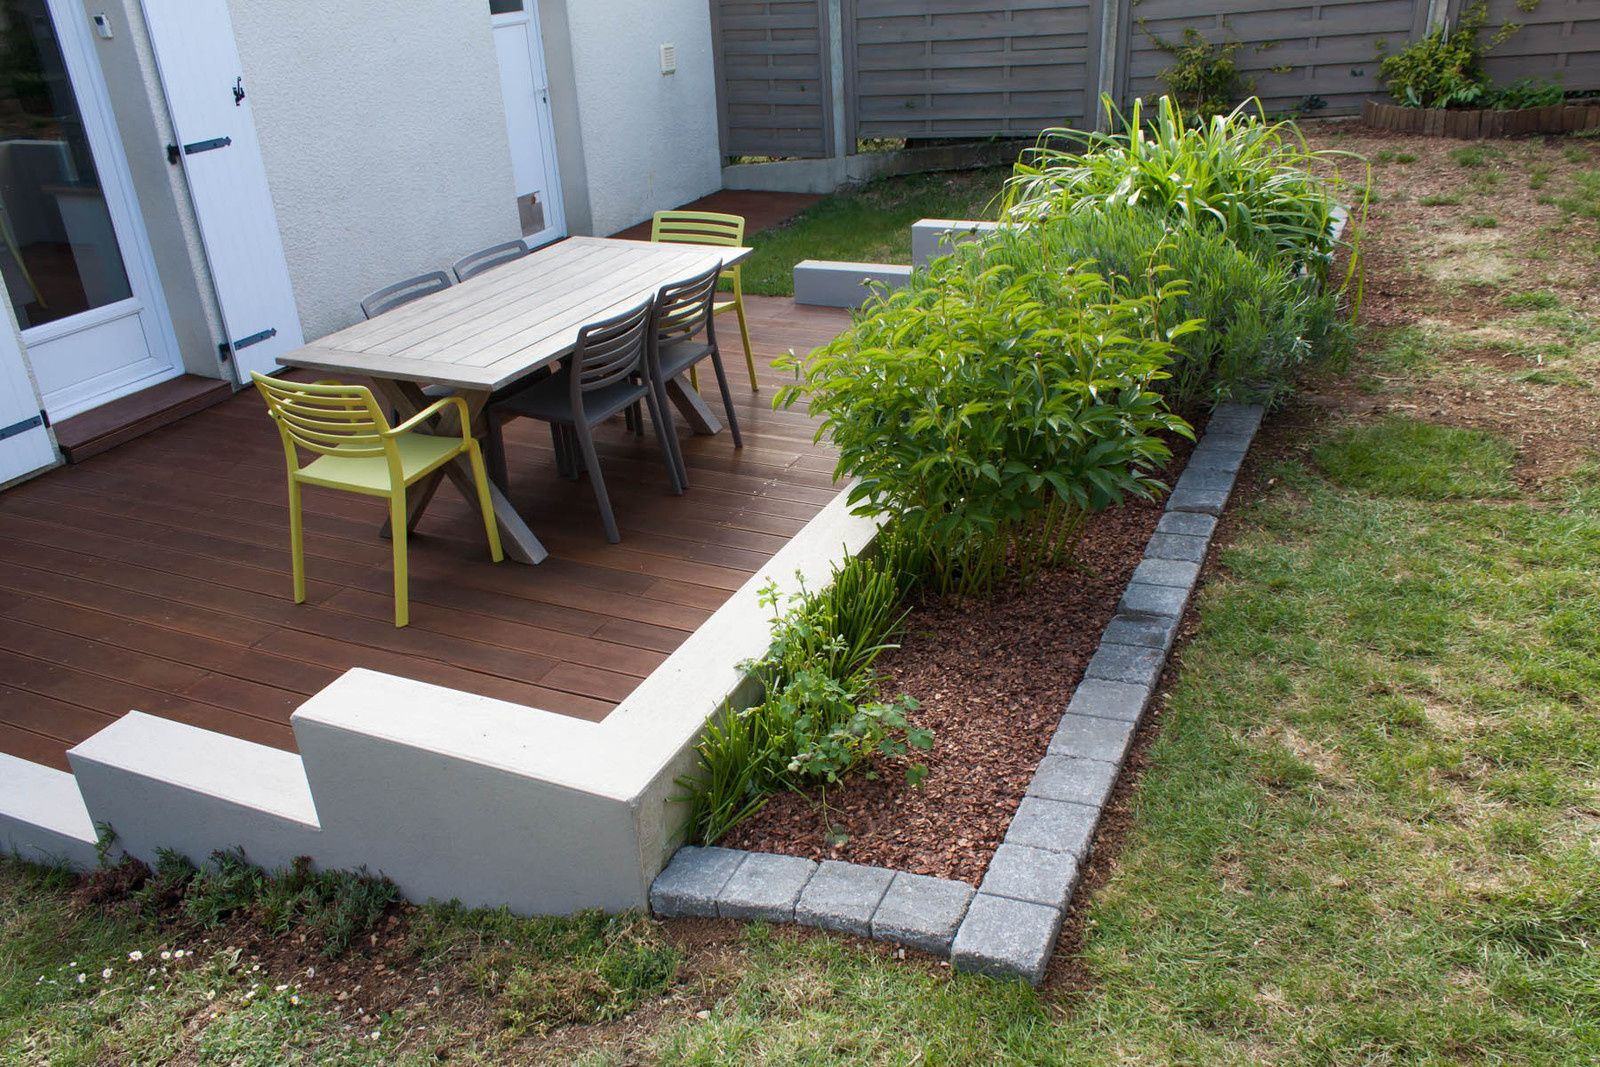 Etag re pour plantes tag re ext rieure tag re balcon for Plante exterieur jardin